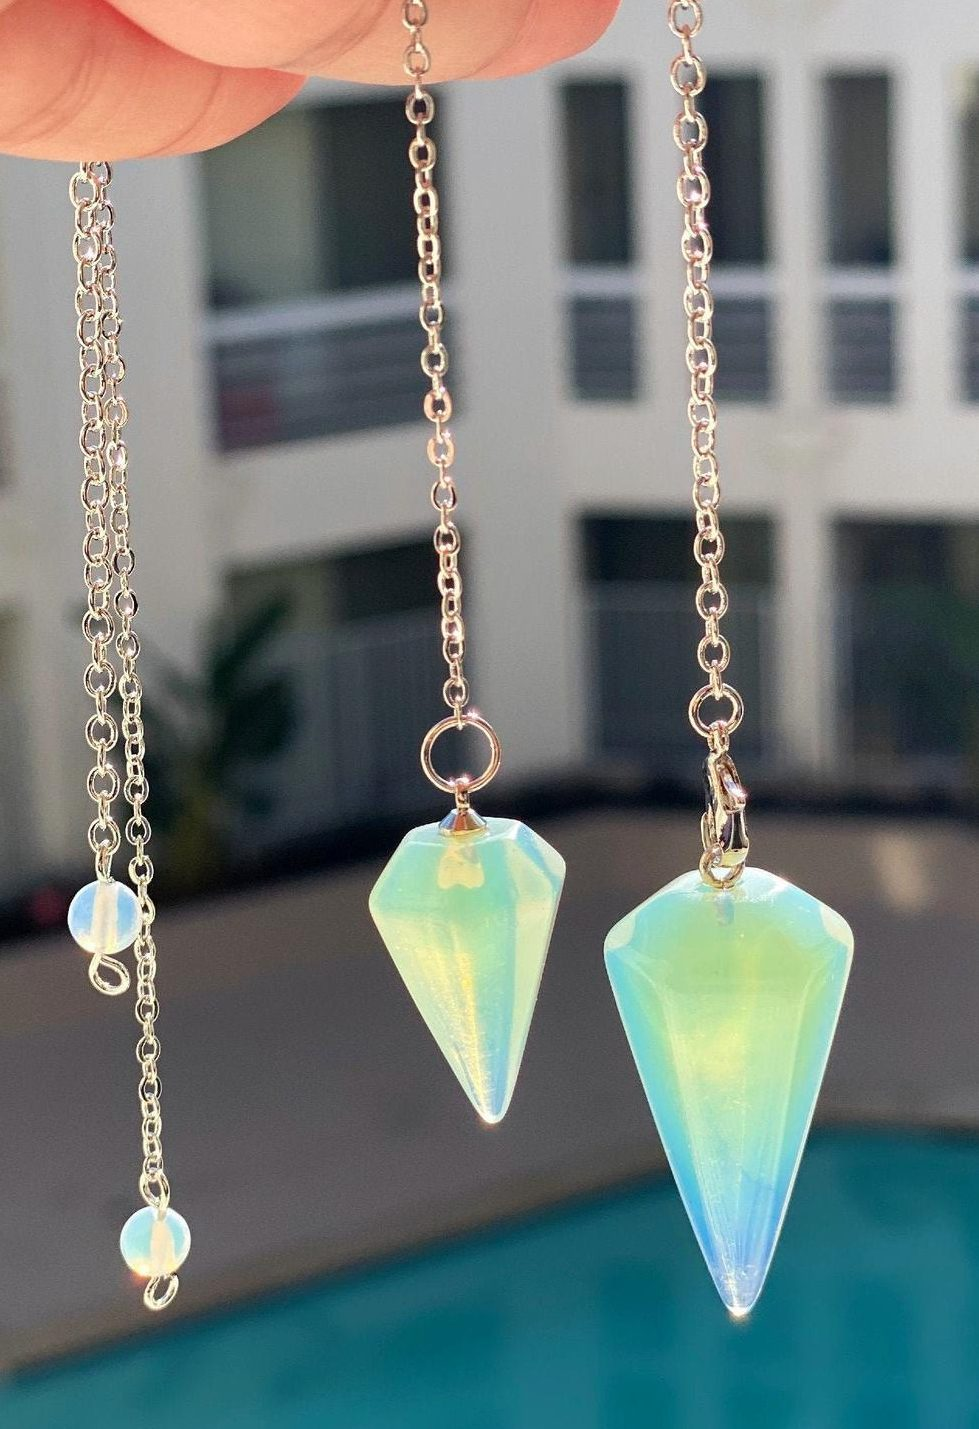 How To Cleanse A Pendulum: 5 Strong & Easy Ways